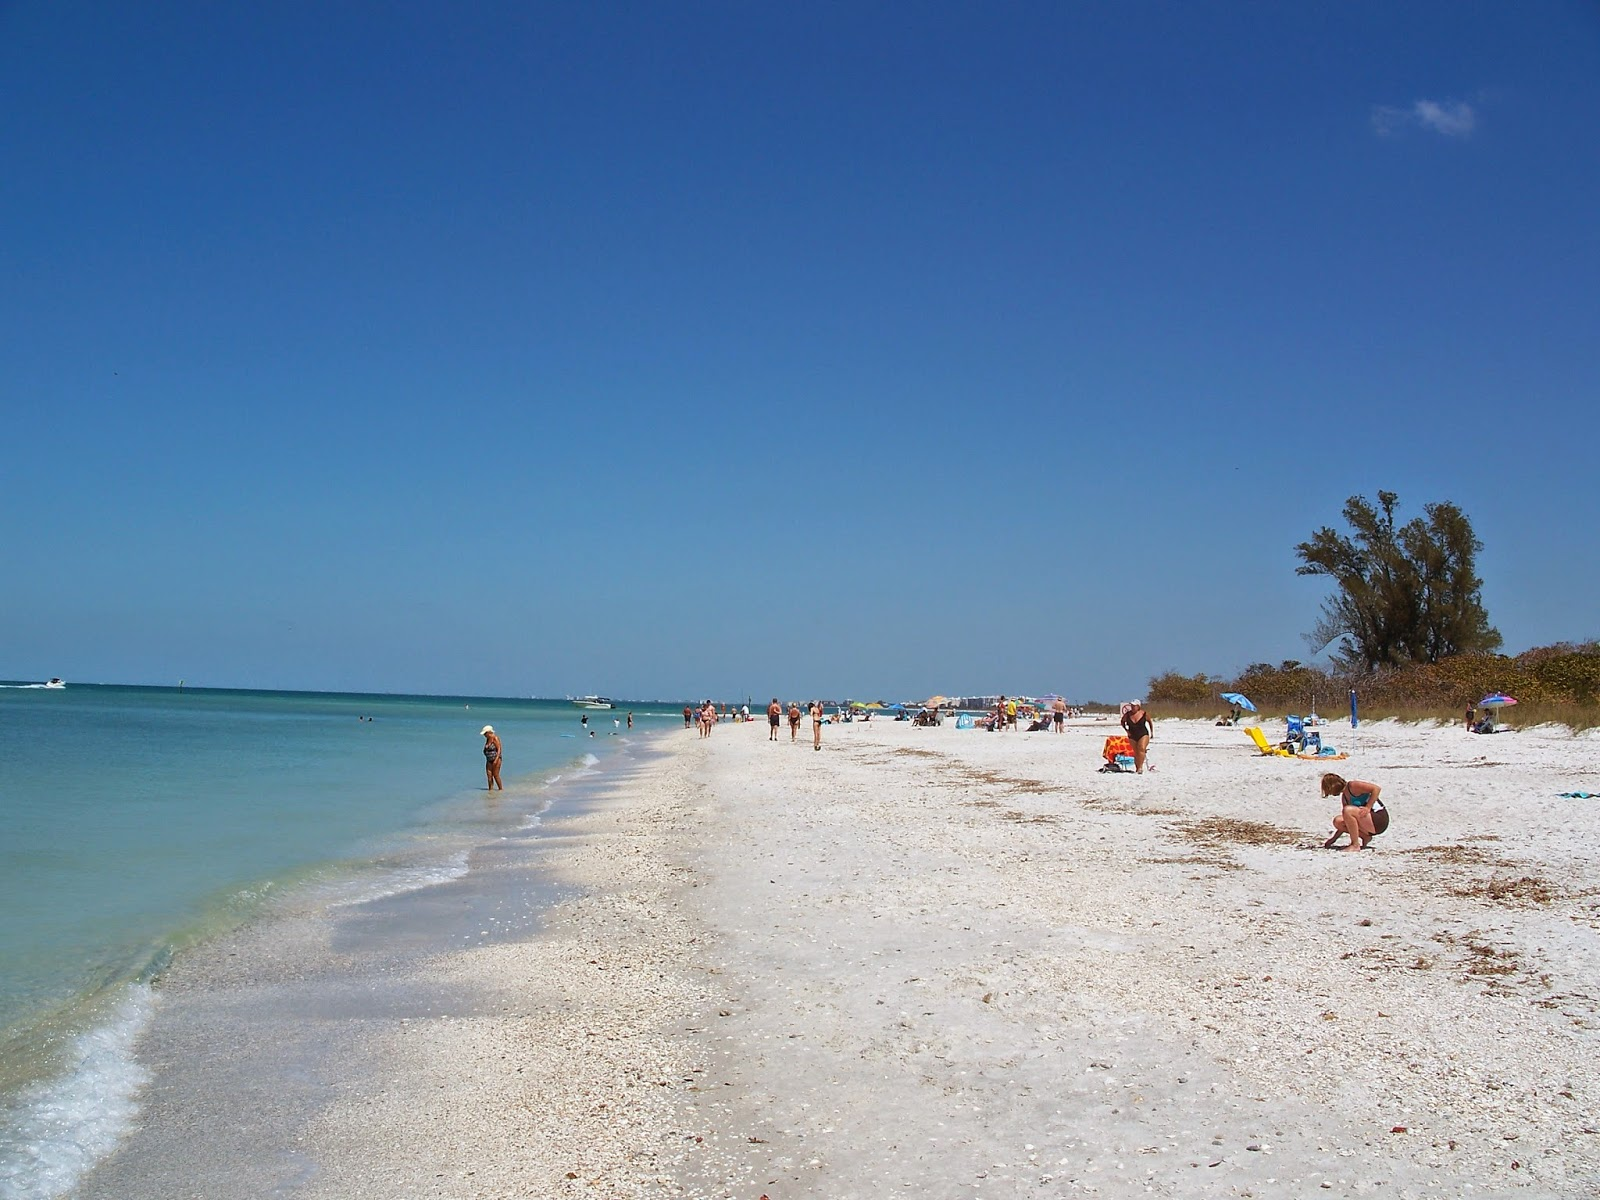 10 best beaches in the united states tvokm for Nice beaches in usa